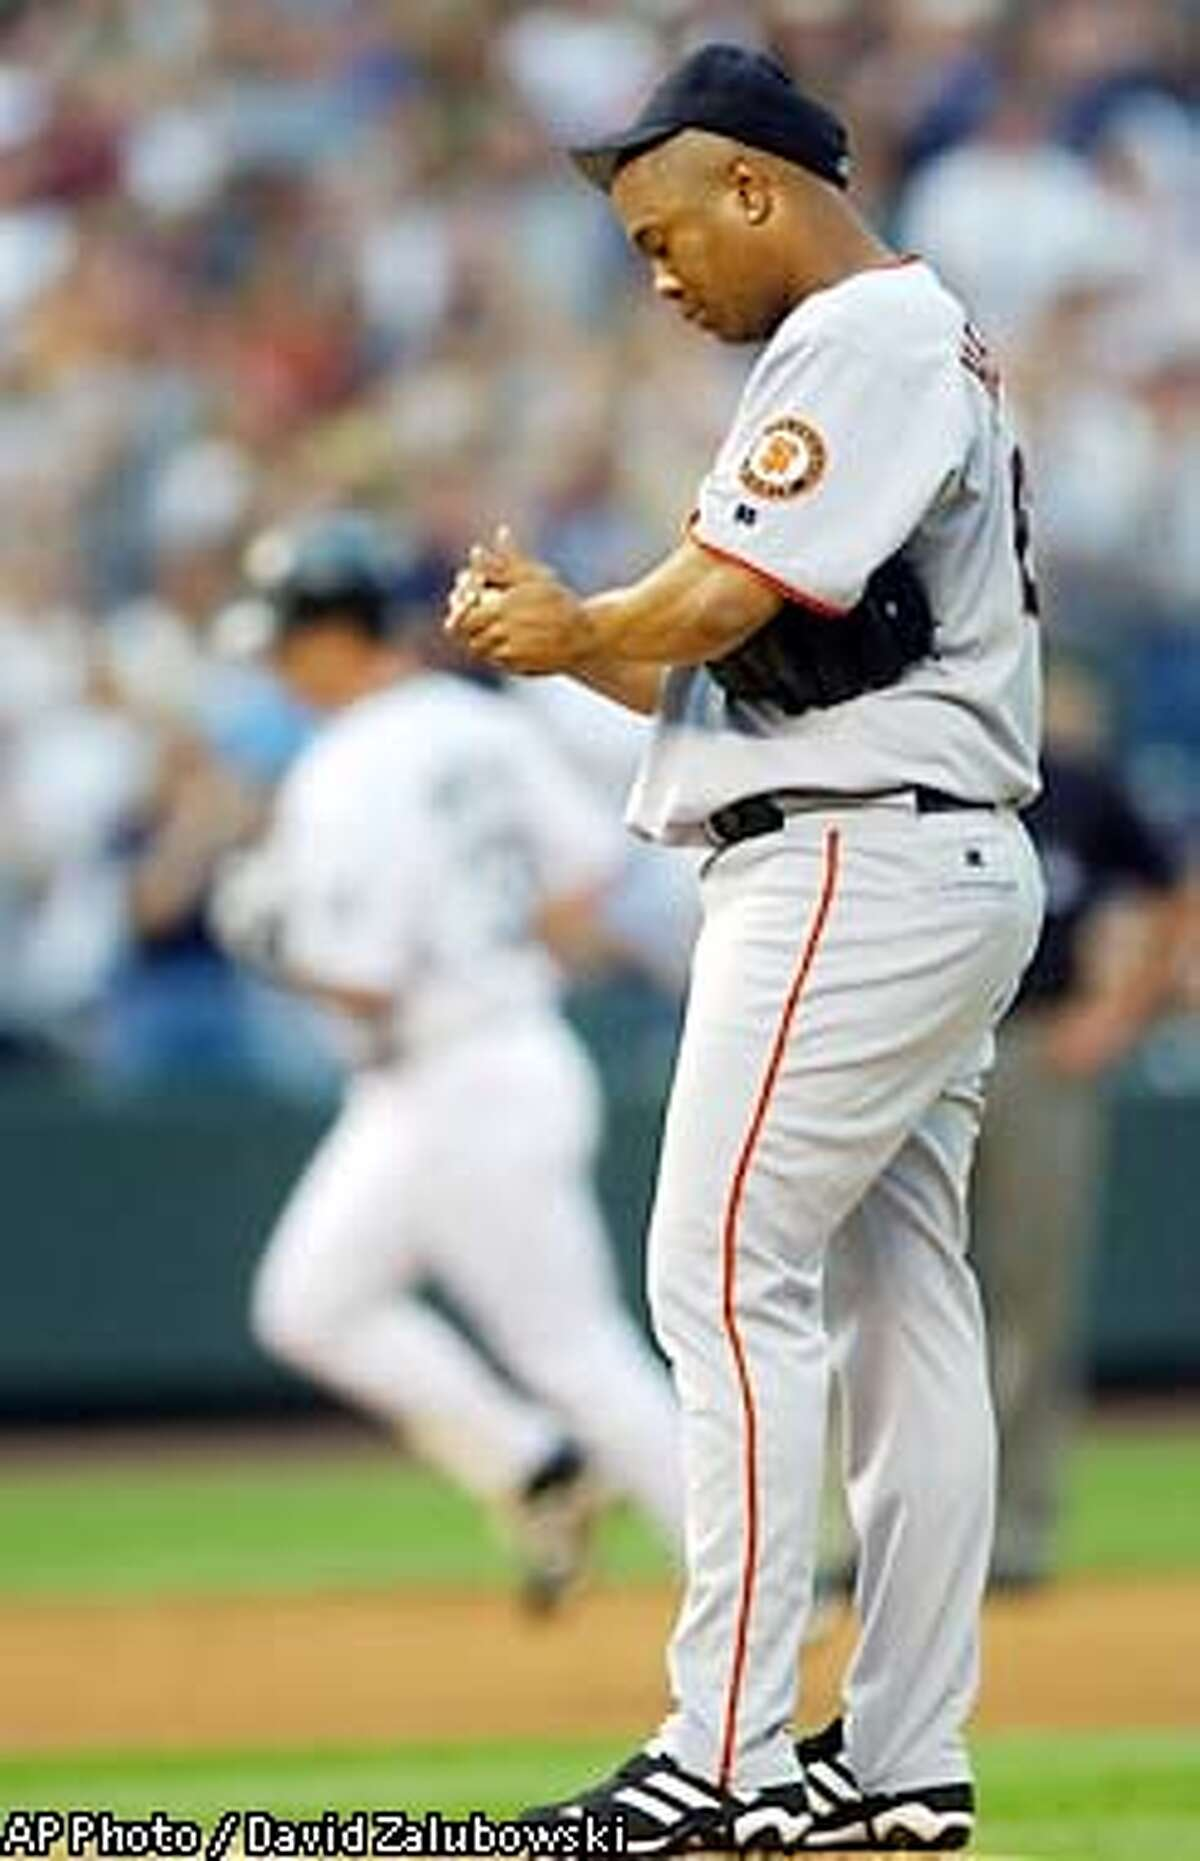 As Colorado Rockies' Larry Walker, back, circles the bases after hitting a three-run home run, San Francisco Giants starting pitcher Livan Hernandez rubs up a new ball in the second inning in Coors Field in Denver on Wednesday, July 3, 2002. Hernandez gave up seven runs in the inning before being pulled. (AP Photo/David Zalubowski)